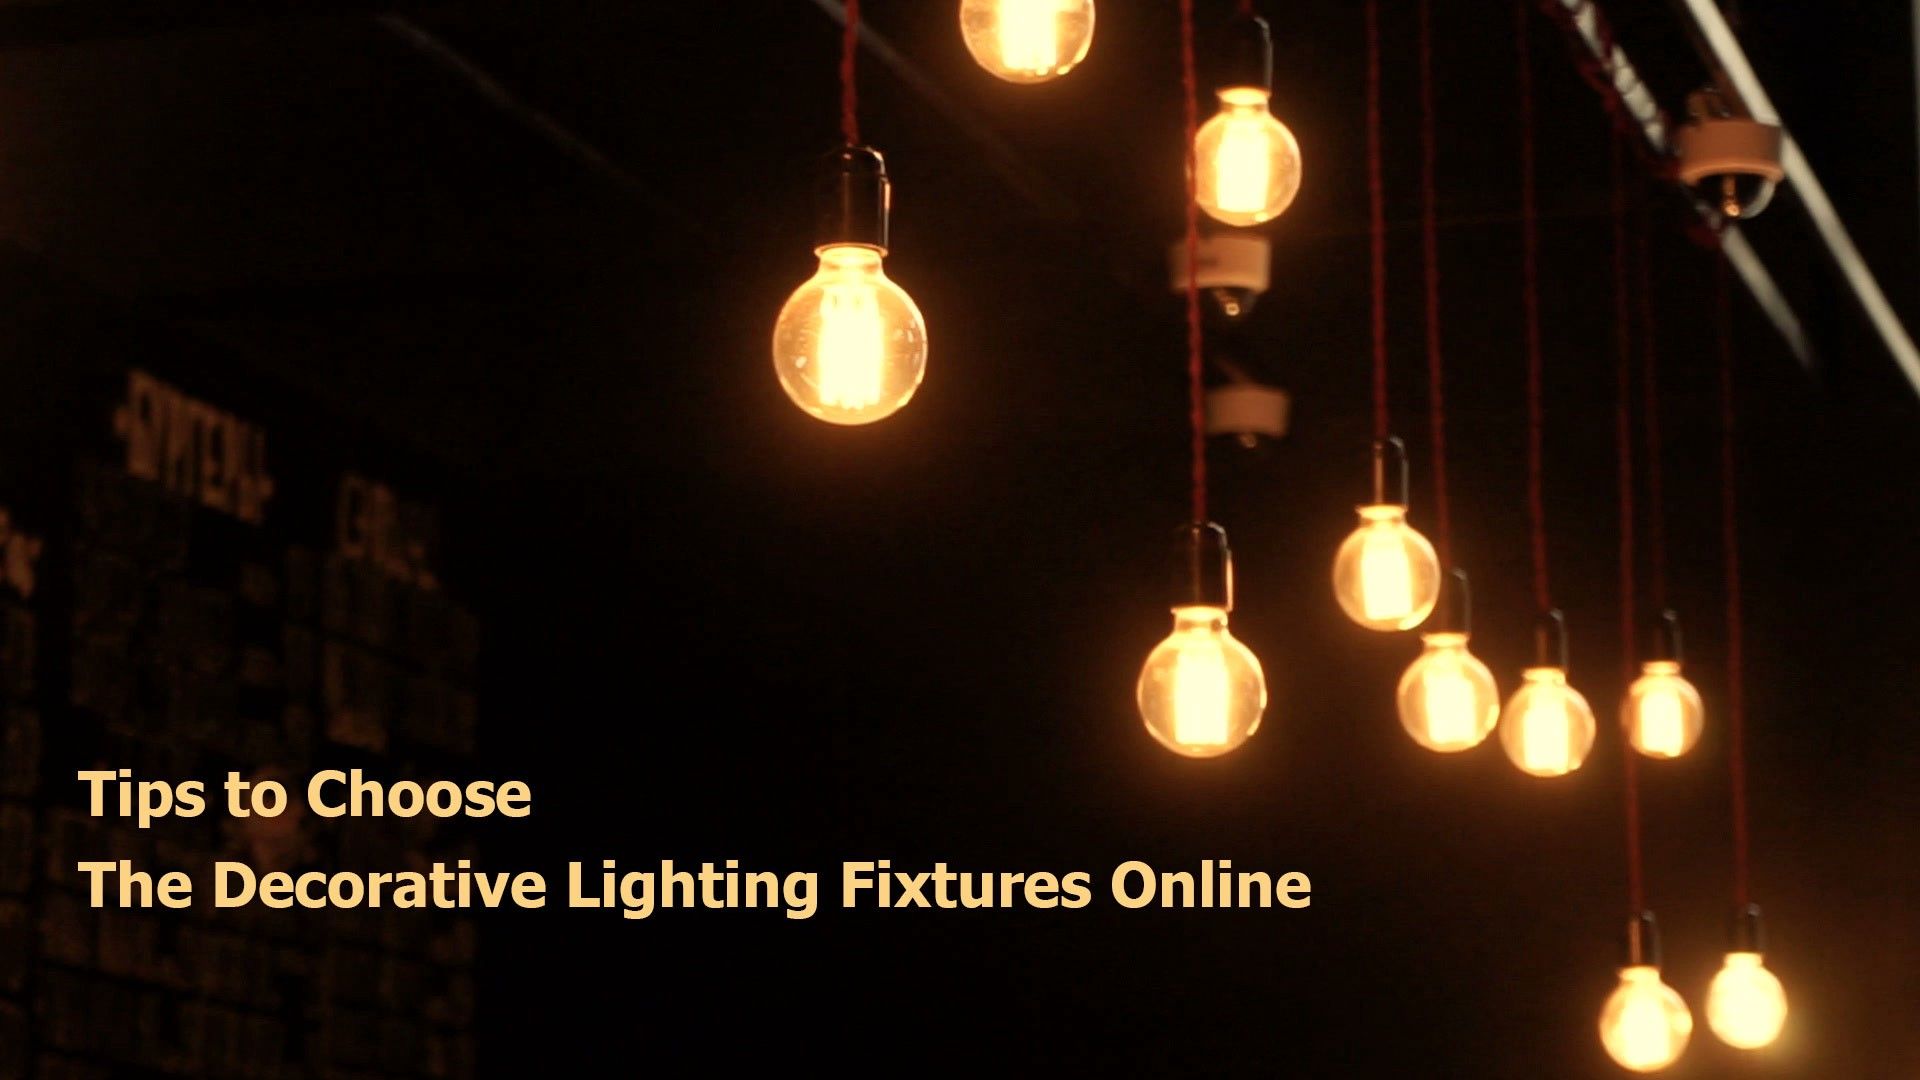 Selection of lighting products